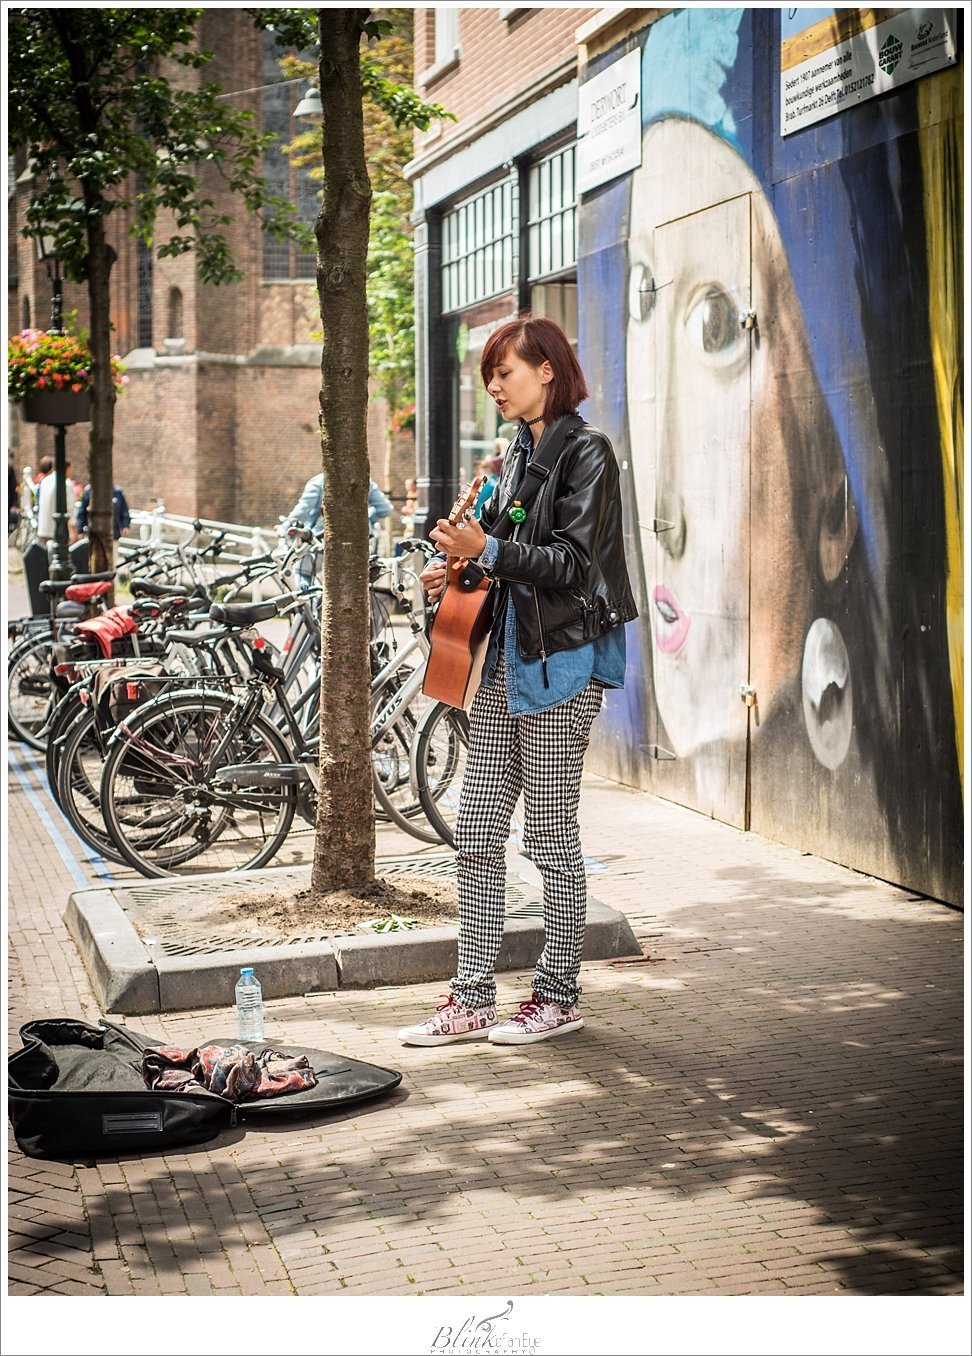 Street artist sings in Delft with The Girl With a Pearl Earring as a backdrop.